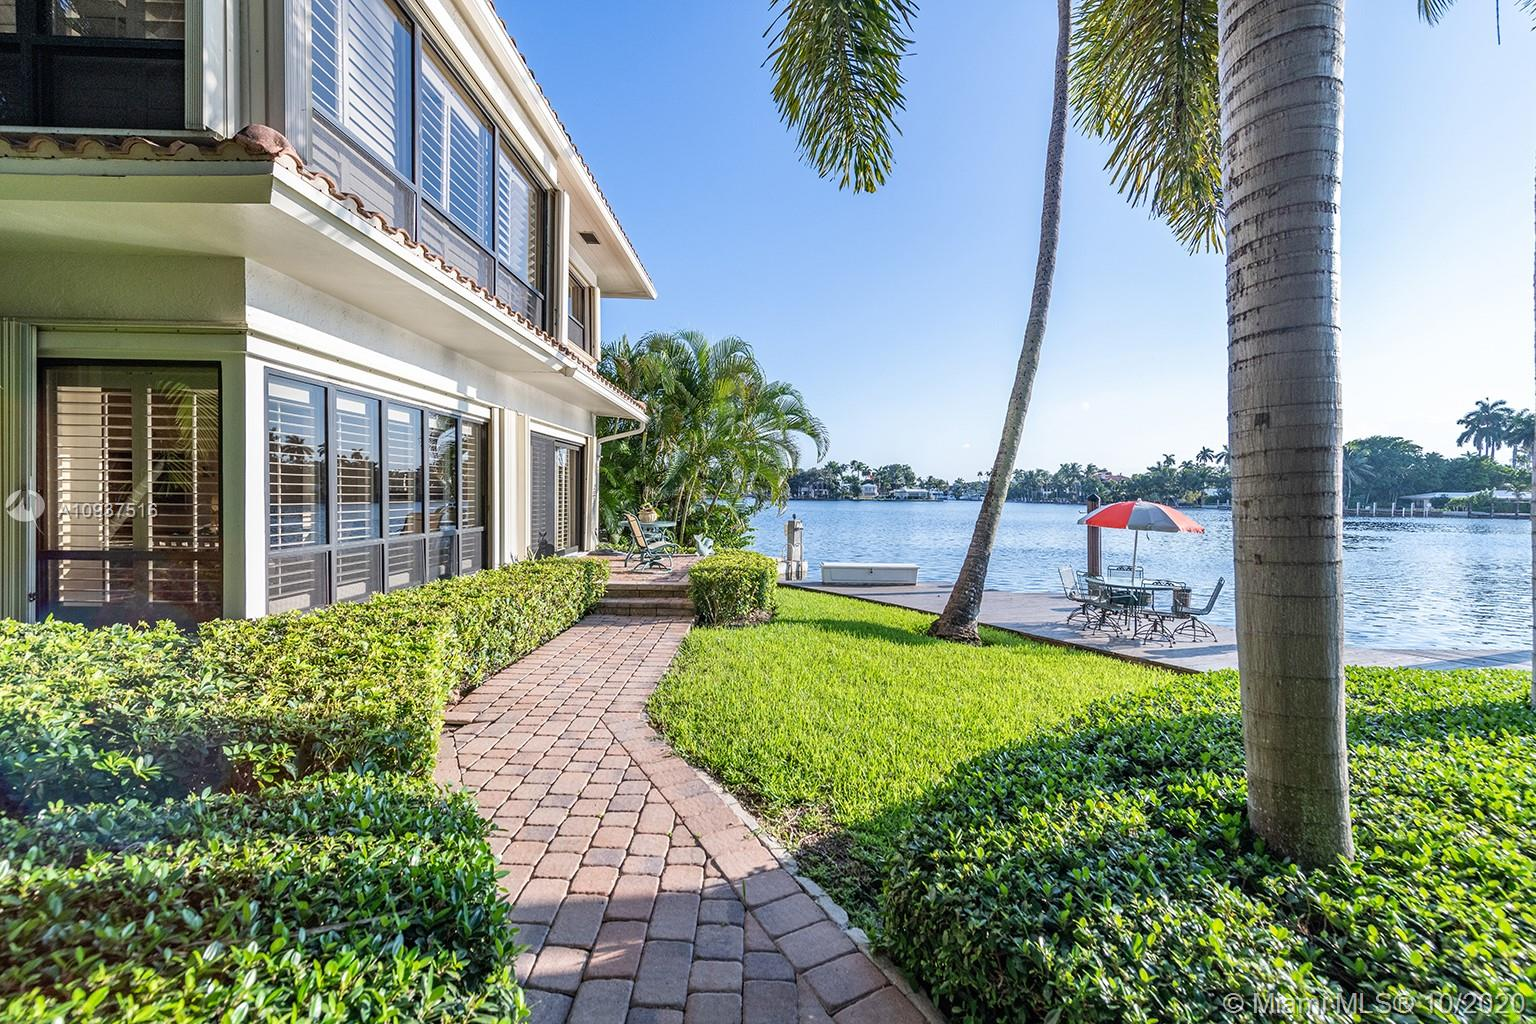 Enjoy the benefits of a private waterfront home with boat dockage but with the maintenance free ease of a condominium.  Rare and highly desirable first floor corner residence at Lake Shore Condominium features an open floorplan with spacious living/dining room, separate reading nook, home office and a custom Poggenpohl kitchen and master bath.  Impact windows and plantation shutters throughout.  Private 1 car garage with additional car parking in front of the garage.  Enjoy panoramic views of Sunset Lake from the private, walk-out patio.  Boat slip with power can accommodate a 60' boat with easy access to the Intracoastal and ocean.  Lushly landscaped tropical oasis with only 5 owners is within close proximity to the beach, downtown/Las Olas and airport.  Furnishings negotiable.